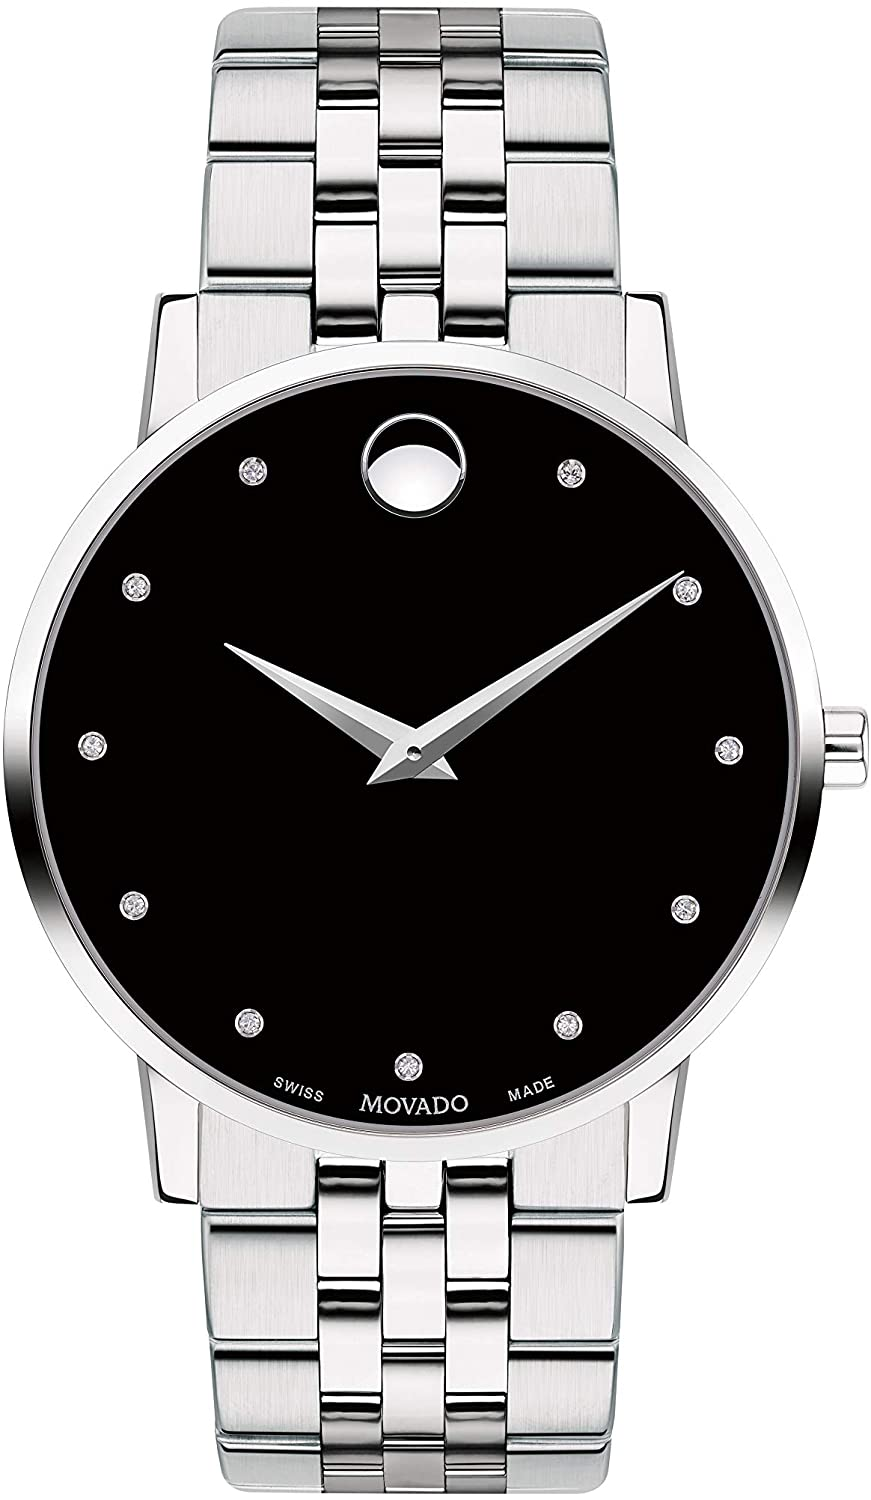 腕時計 モバード メンズ 【送料無料】Movado Museum Classic, Stainless Steel Case, Black Dial, Stainless Steel Bracelet, Men, 0607201腕時計 モバード メンズ